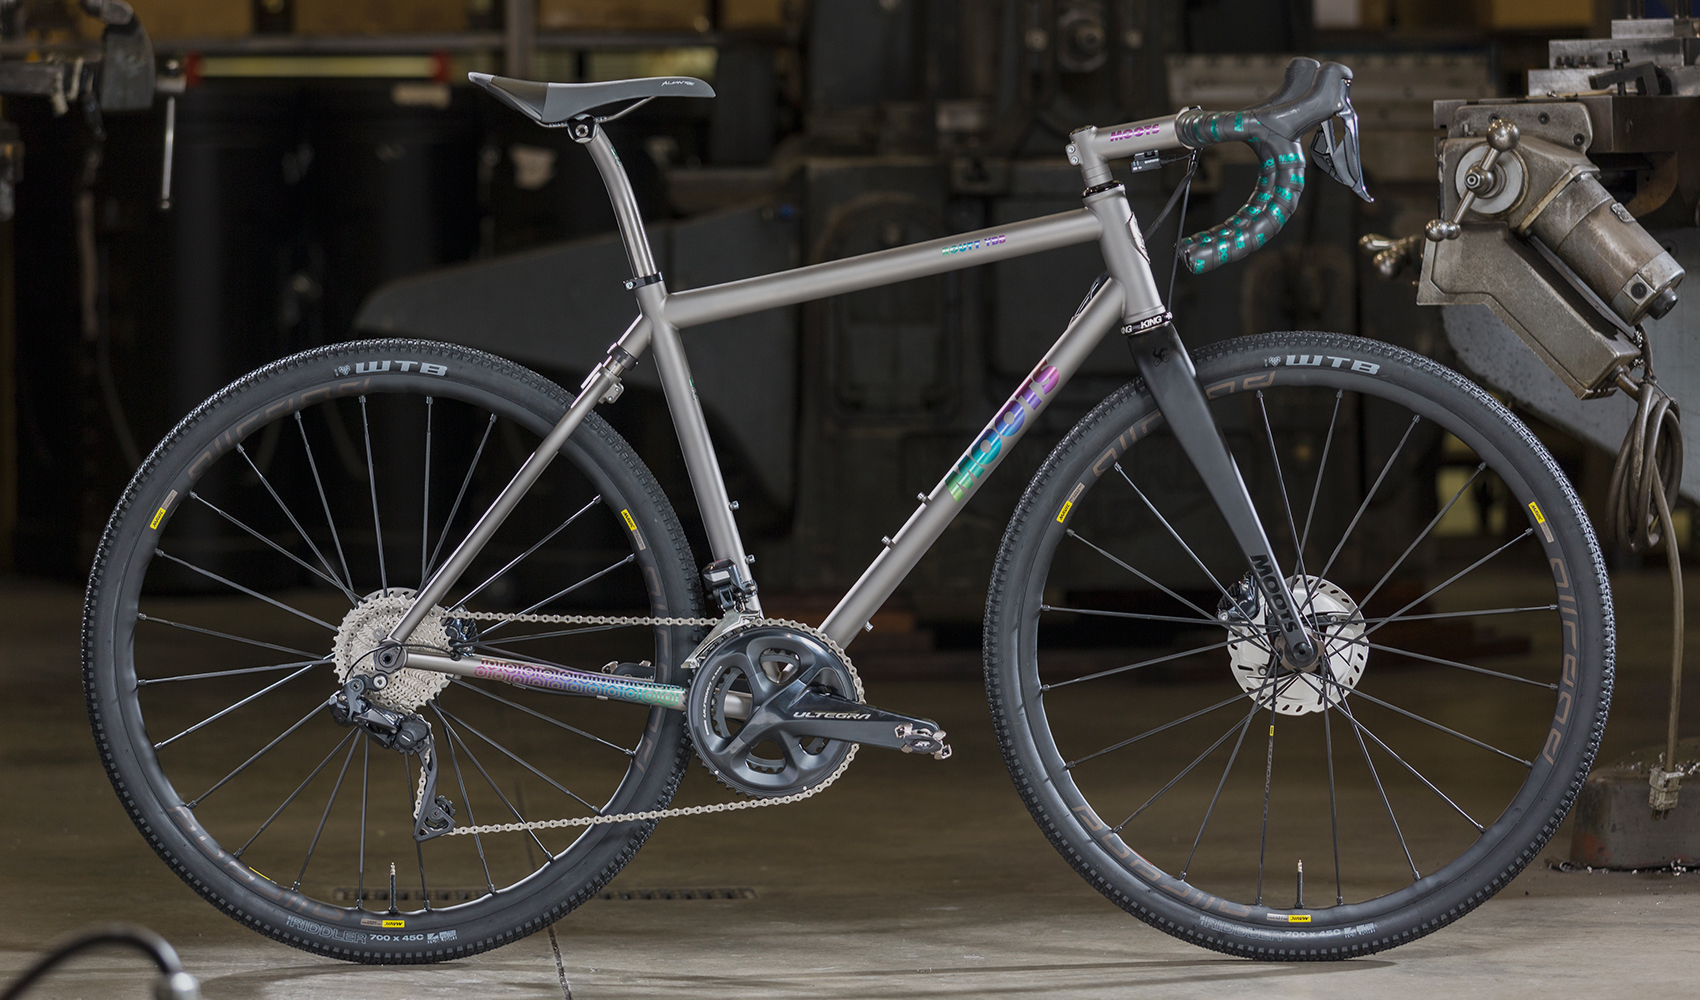 Routt YBB gravel bike introduced